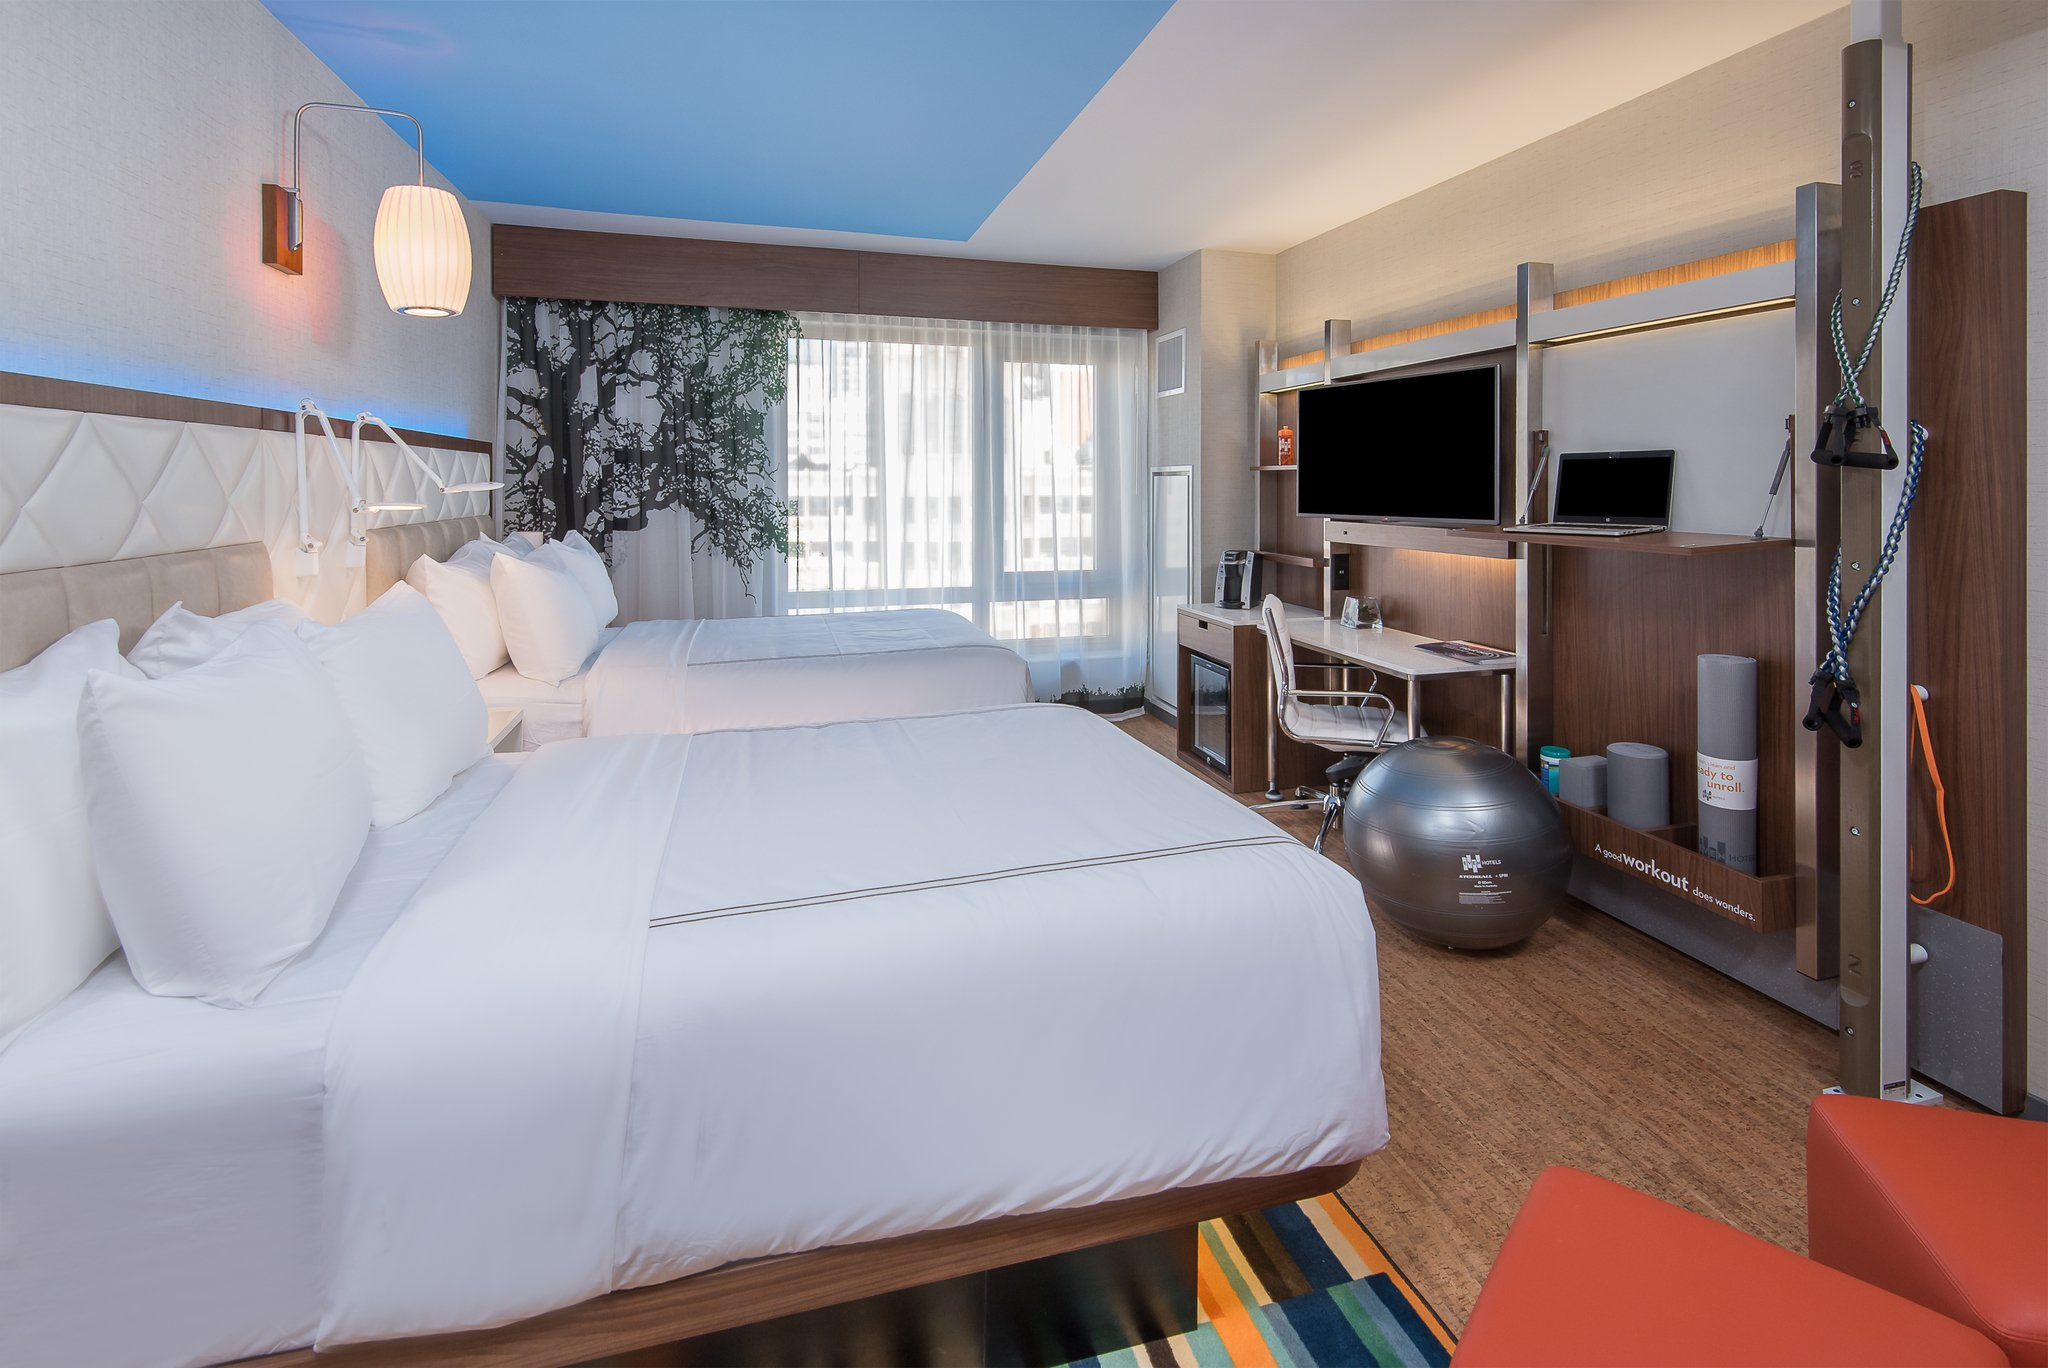 IHG's Even Hotels have included workout equipment in guestrooms since the brand launched.